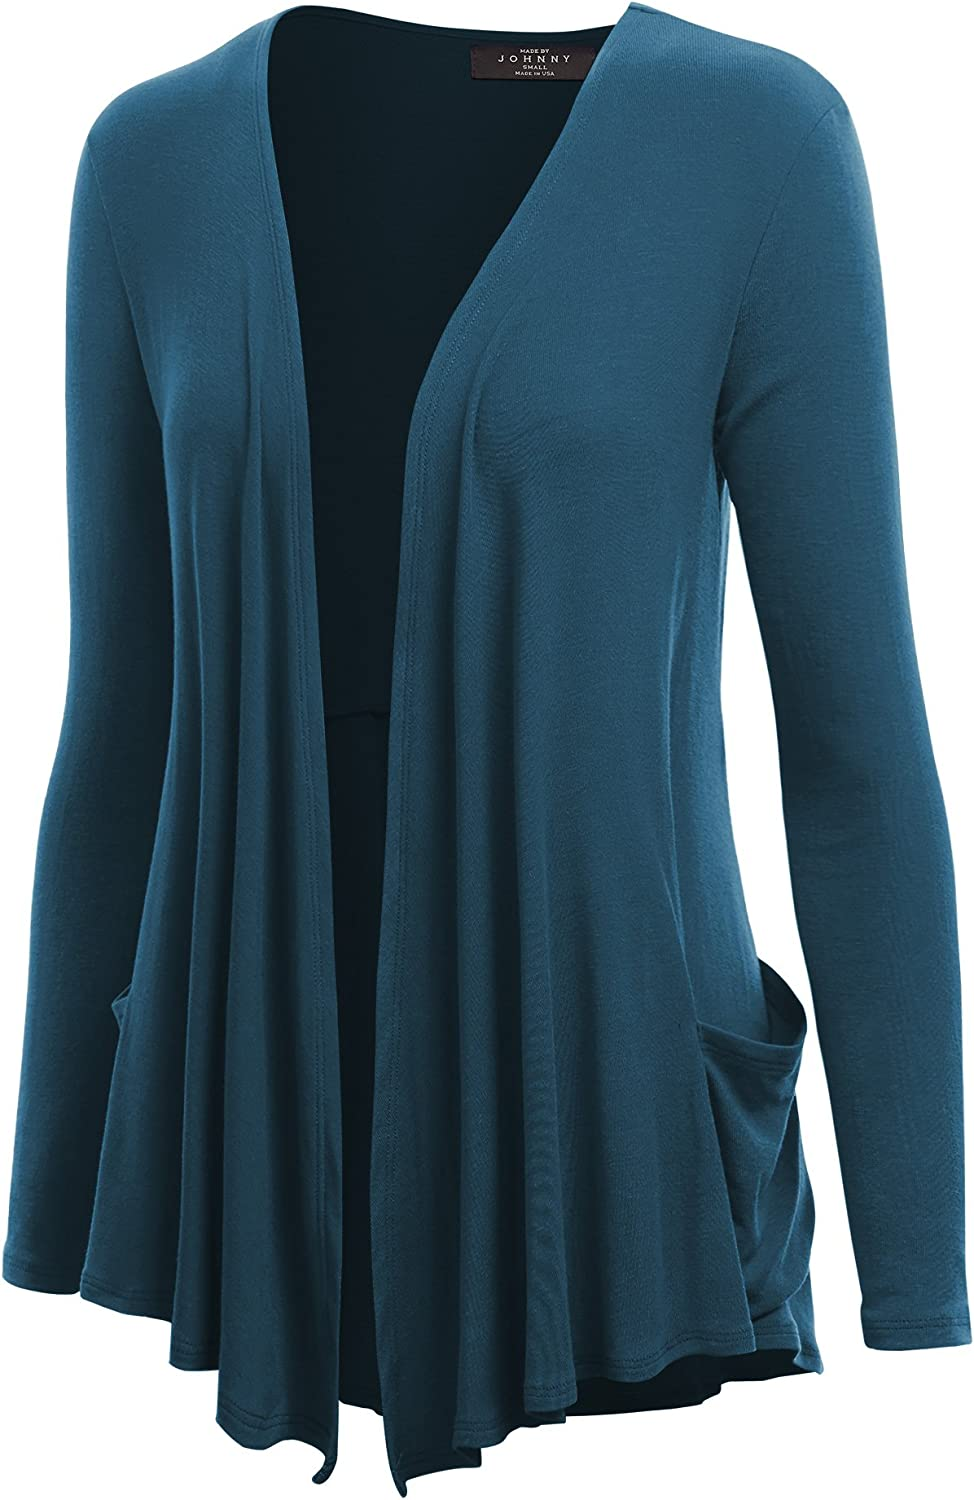 MBJ Womens Solid Long Sleeve Draped Pocket Cardigan with Back Shirring Details